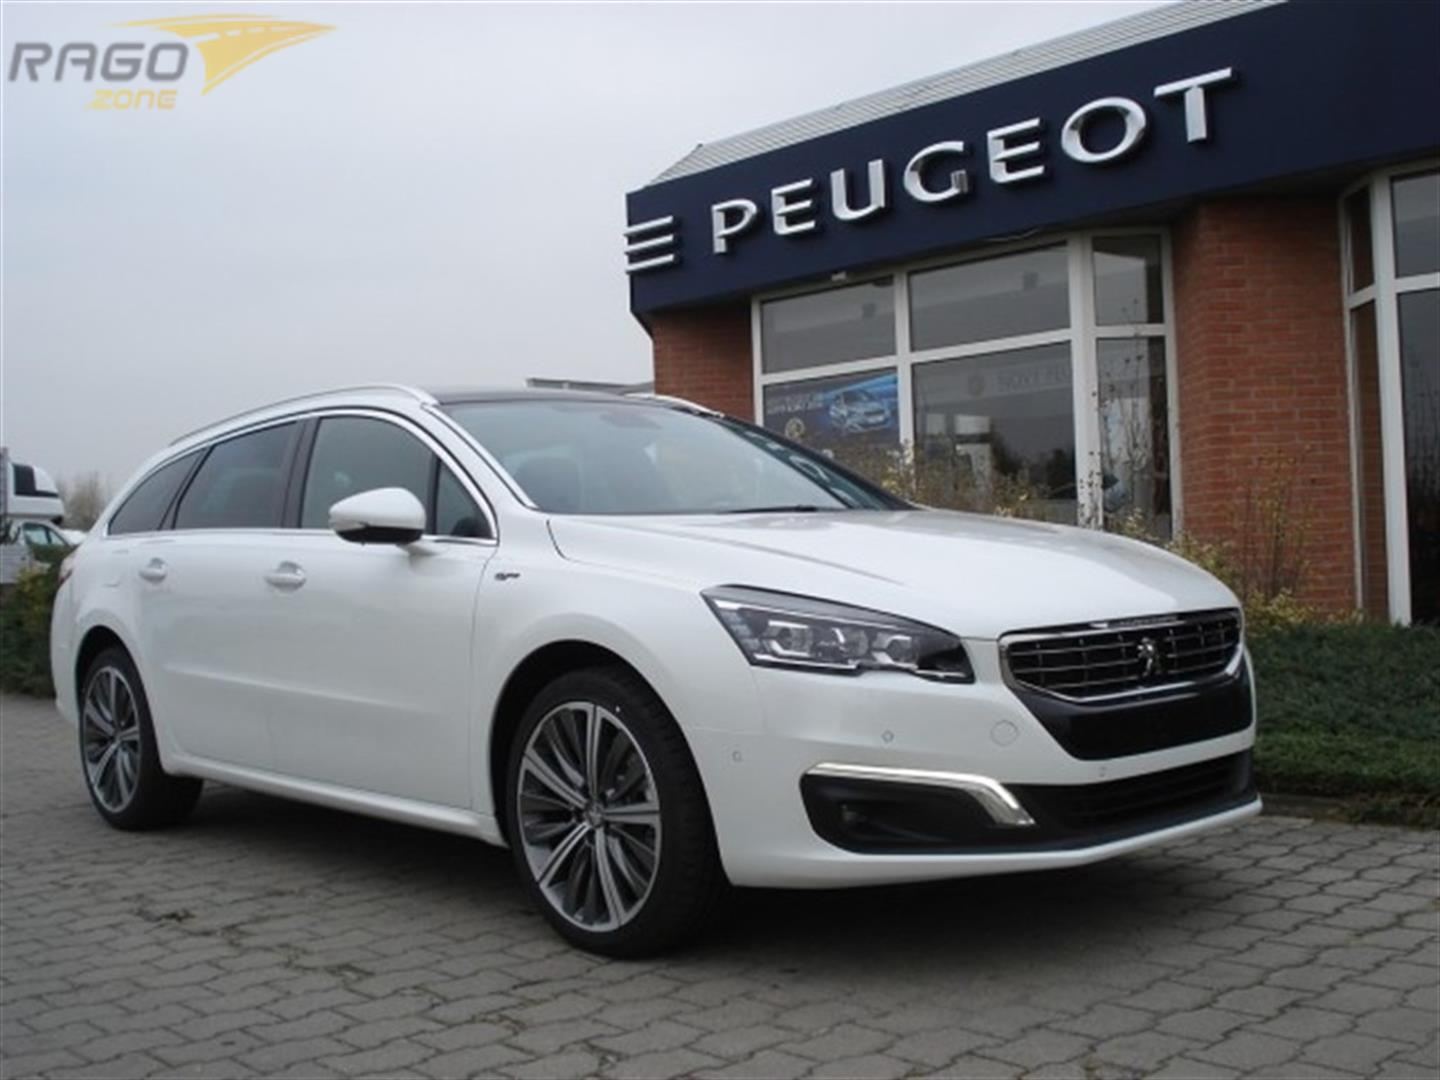 prodej peugeot 508 sw gt 2 2 hdi 204k kombi rok 2015 inzer t 151733. Black Bedroom Furniture Sets. Home Design Ideas